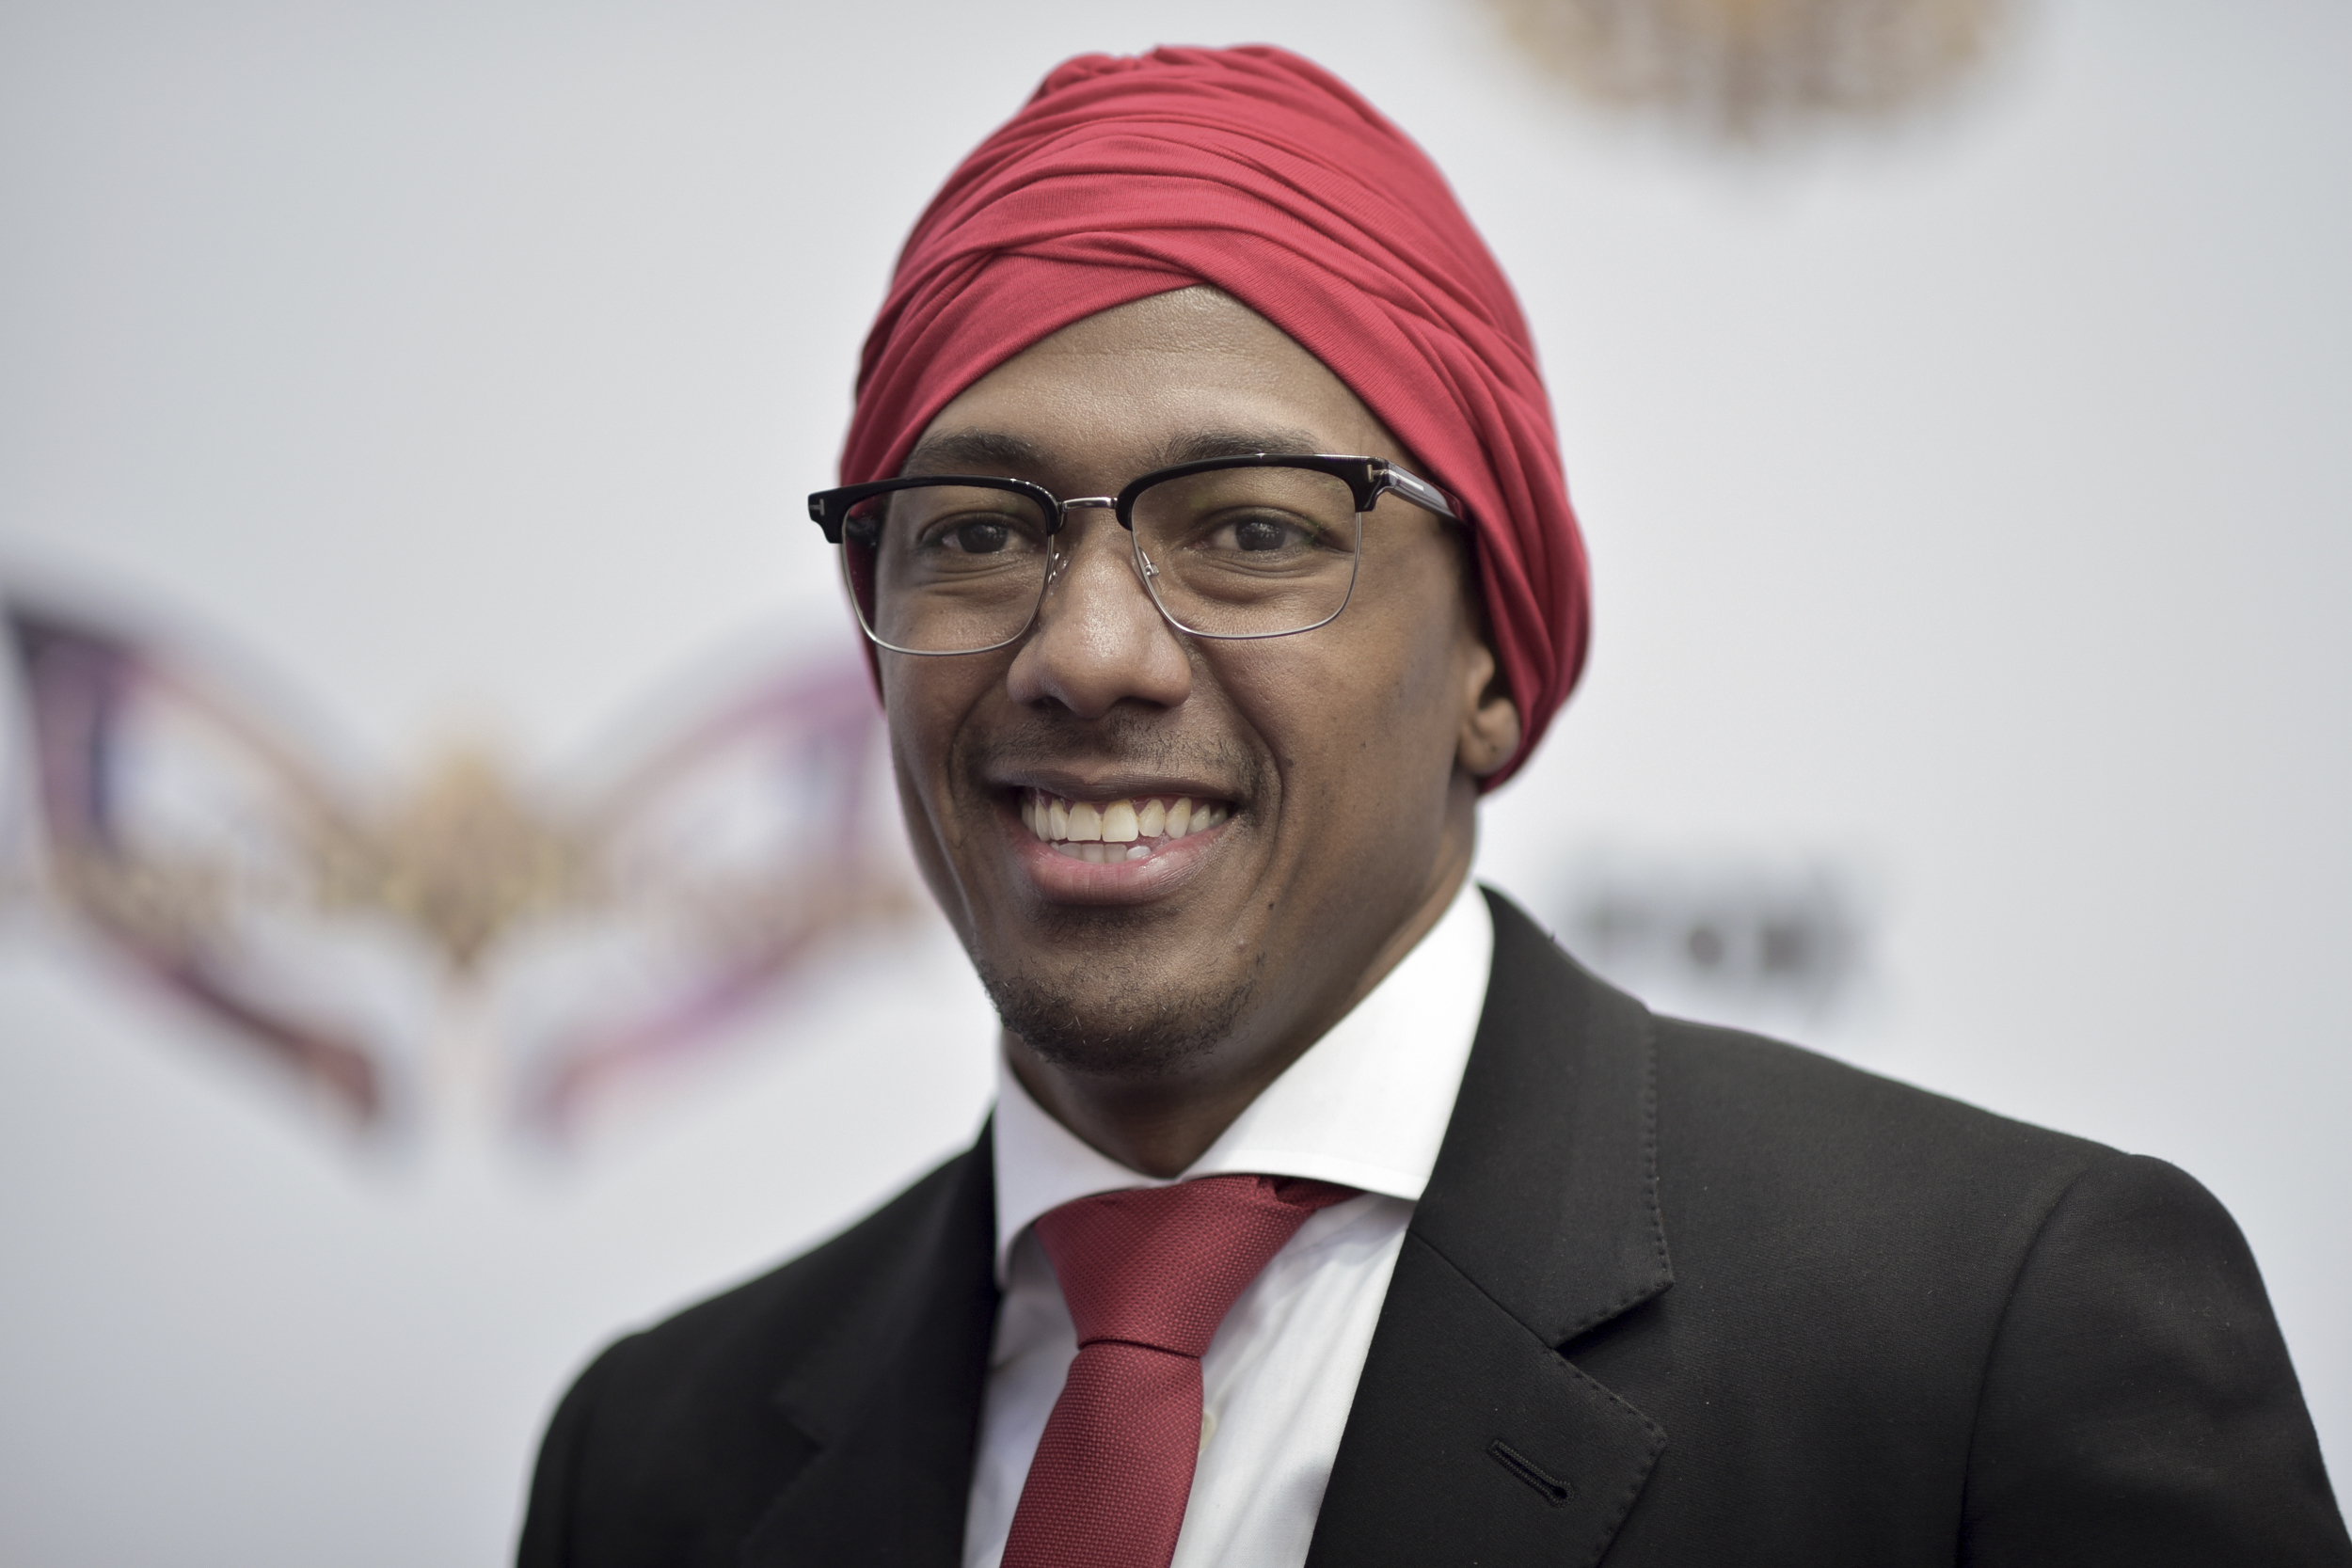 Nick Cannon apologizes to Jewish community for hurtful ...